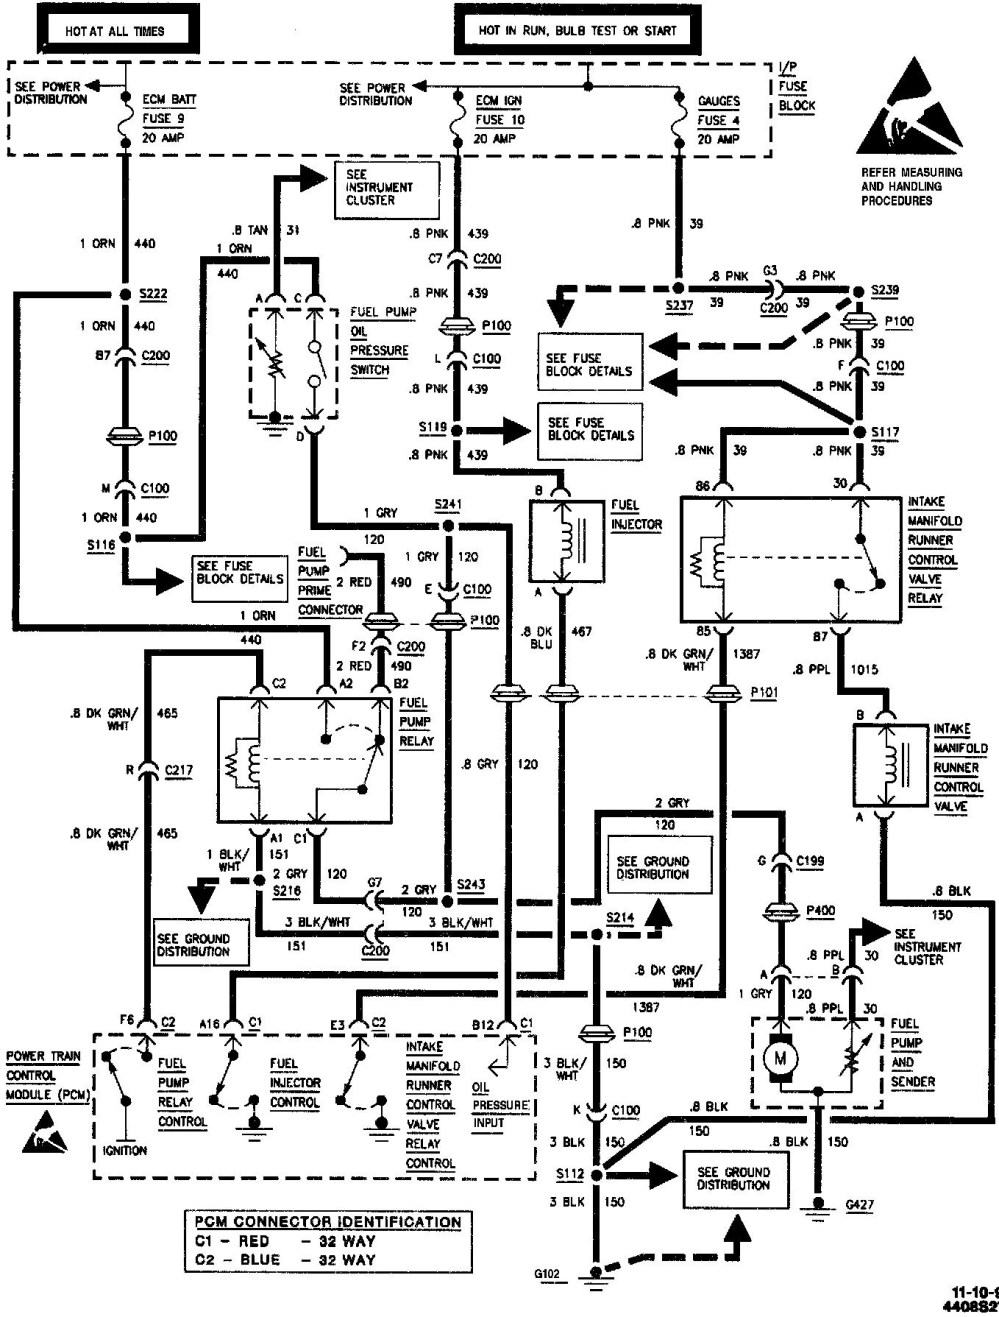 medium resolution of wire diagram for 99 s10 engine 4 3 wiring library rh 88 skriptoase de 2004 chevy